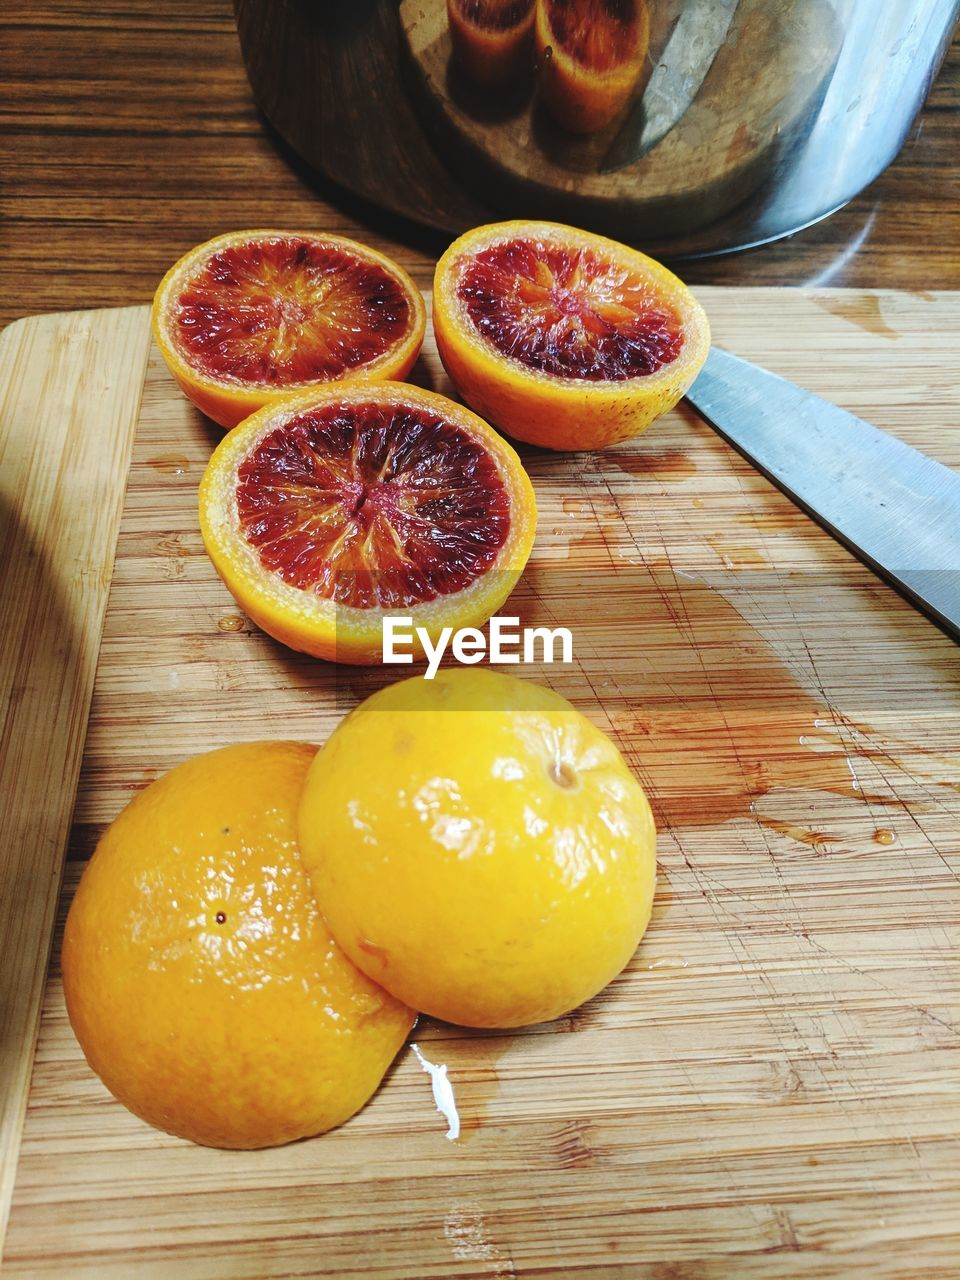 fruit, healthy eating, citrus fruit, cross section, freshness, food and drink, food, table, halved, wood - material, no people, slice, indoors, high angle view, cutting board, day, blood orange, close-up